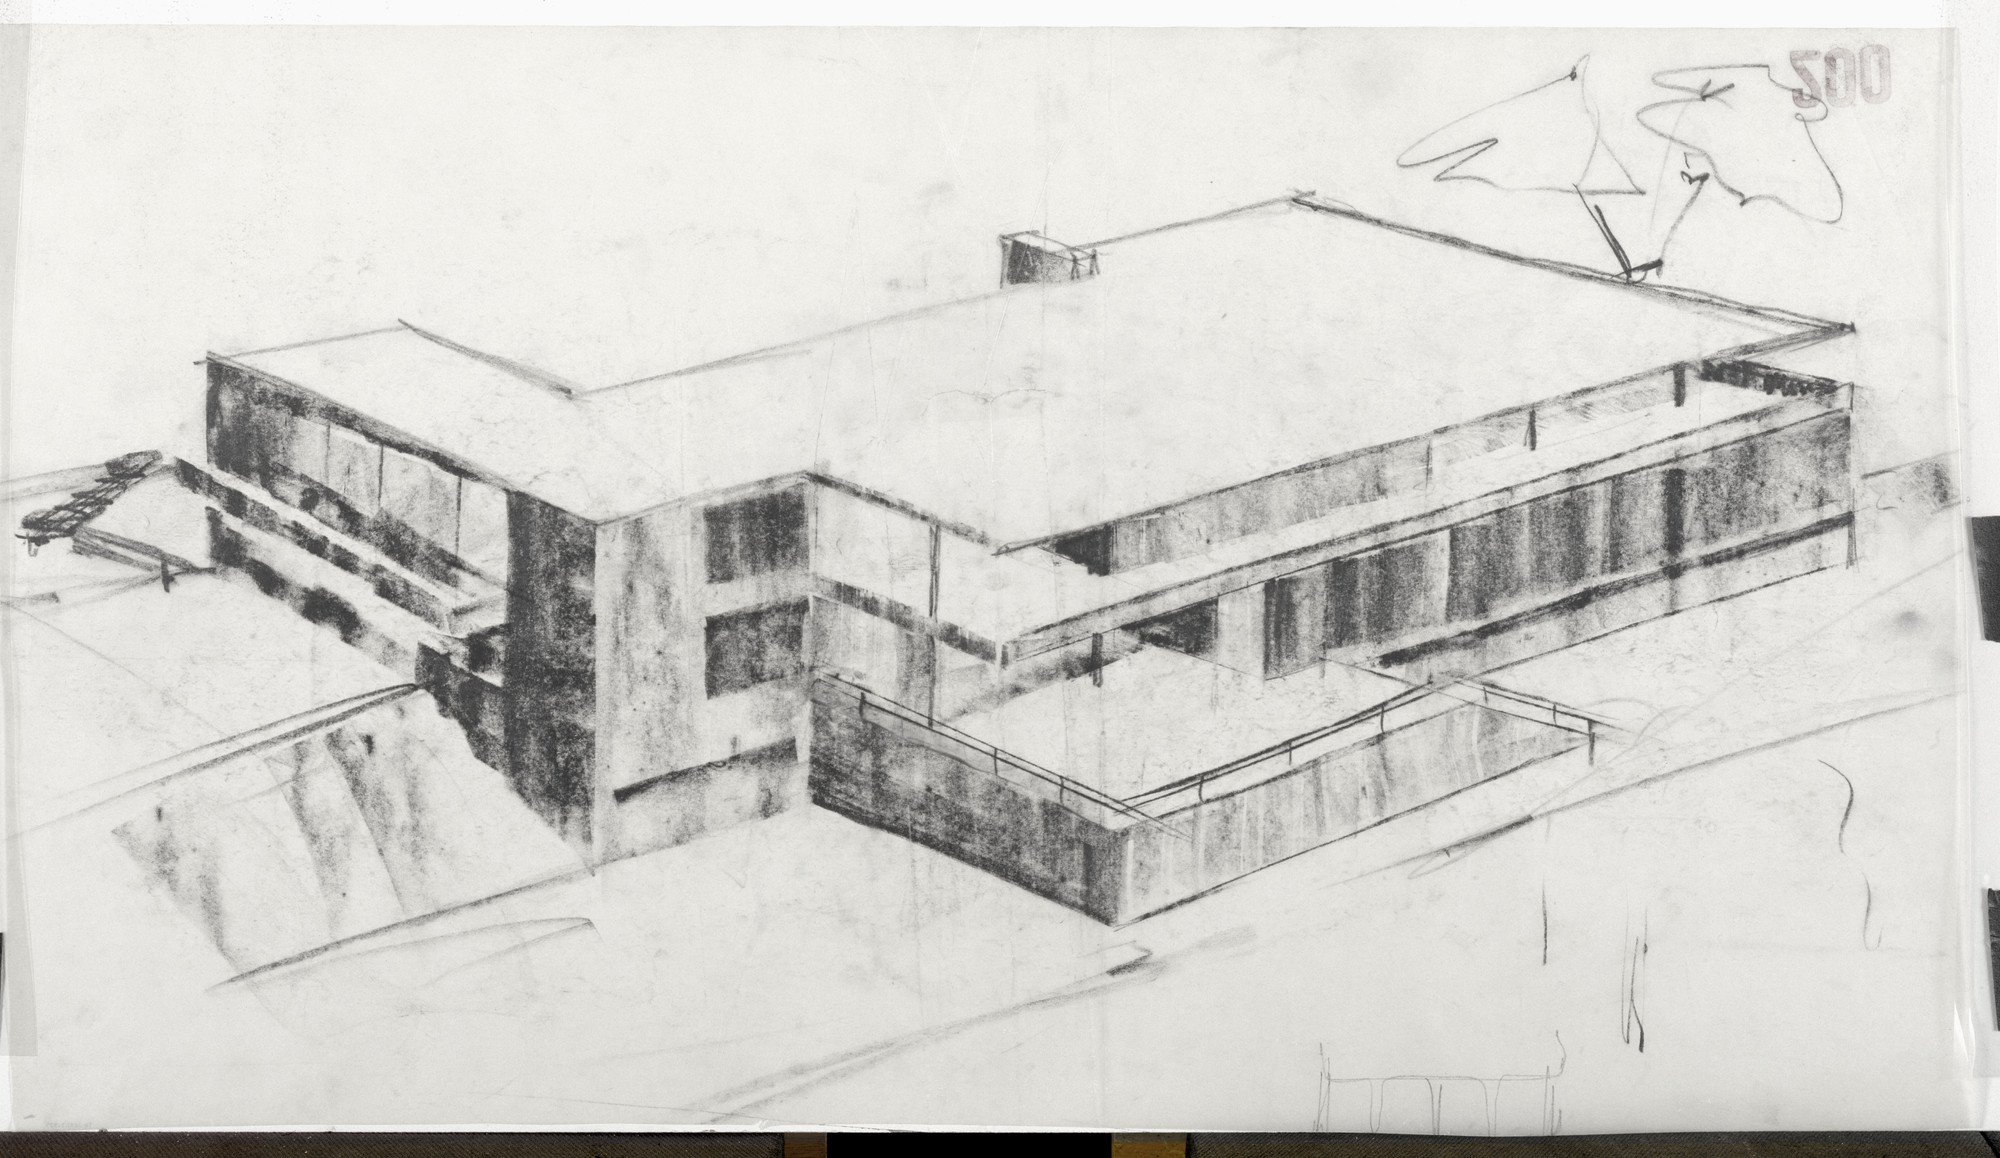 Ludwig Mies van der Rohe. Tugendhat House, Brno, Czech Republic. 1928–1930